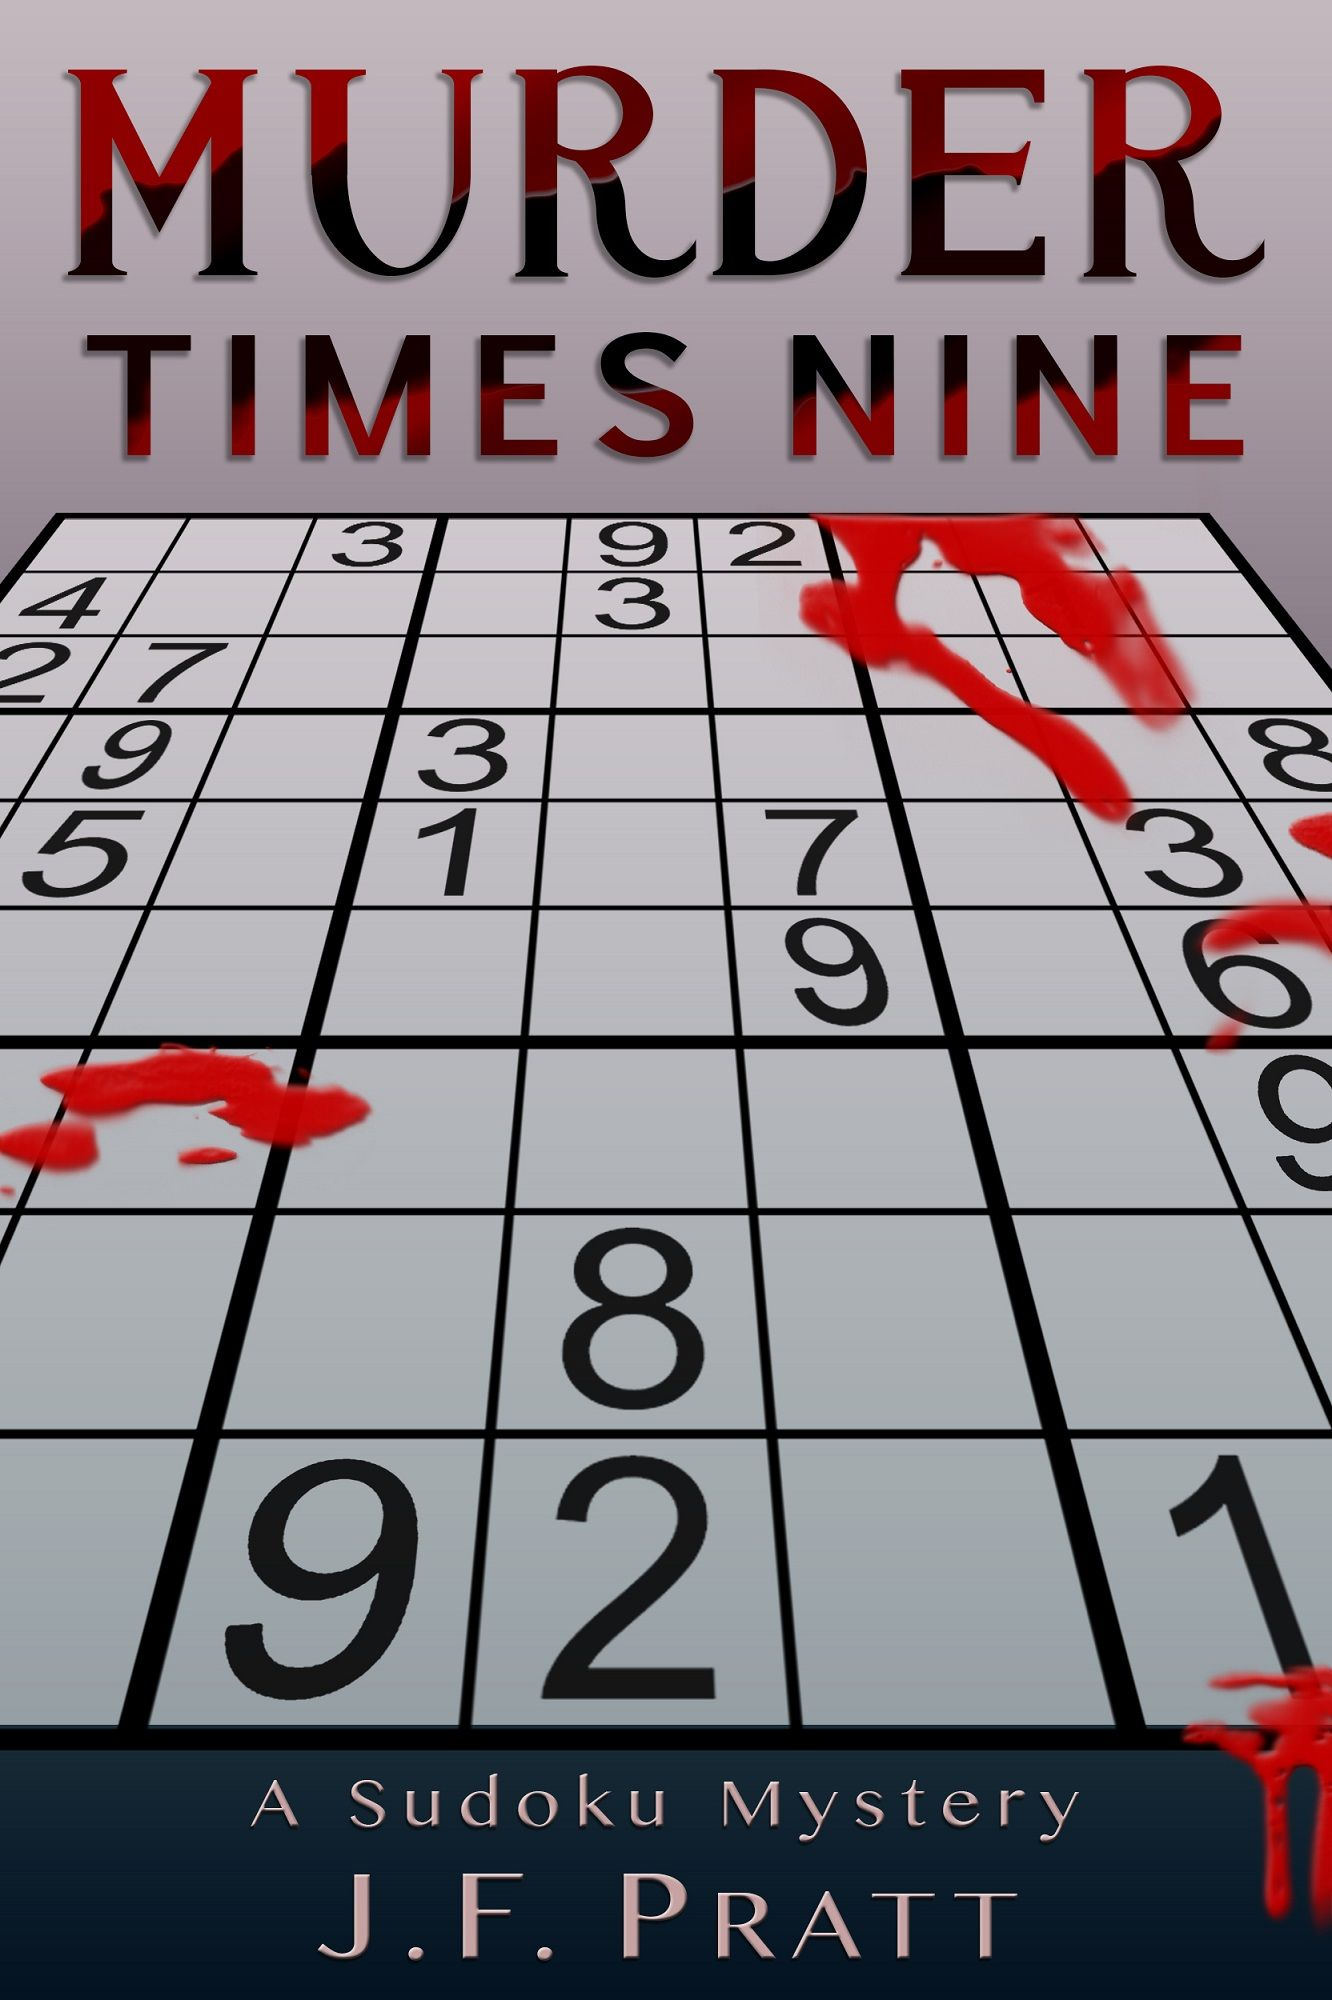 Murder Times Nine by J.F. Pratt